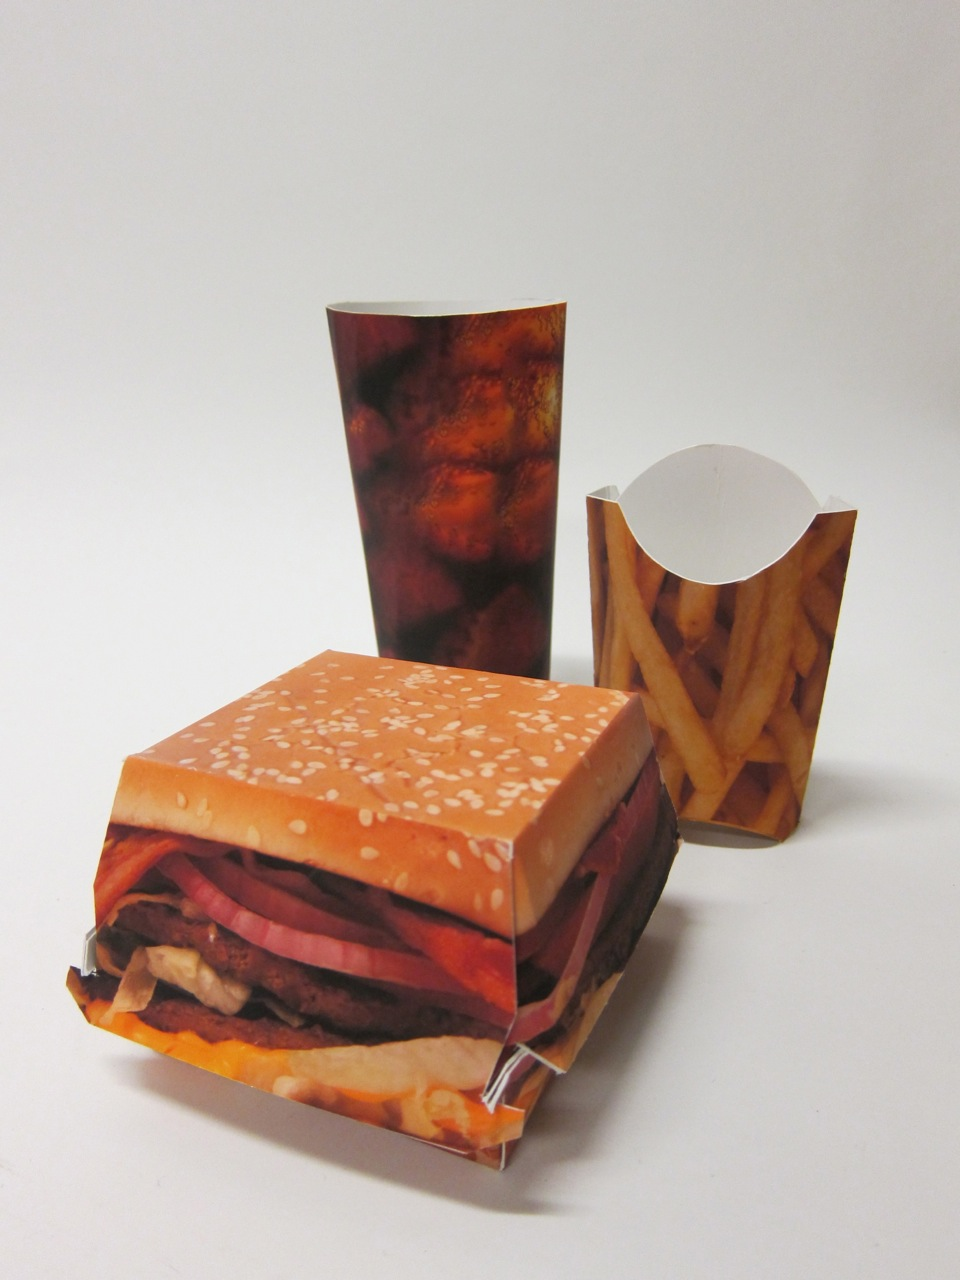 burger  fries and cola packaging  u00b7 david bordow